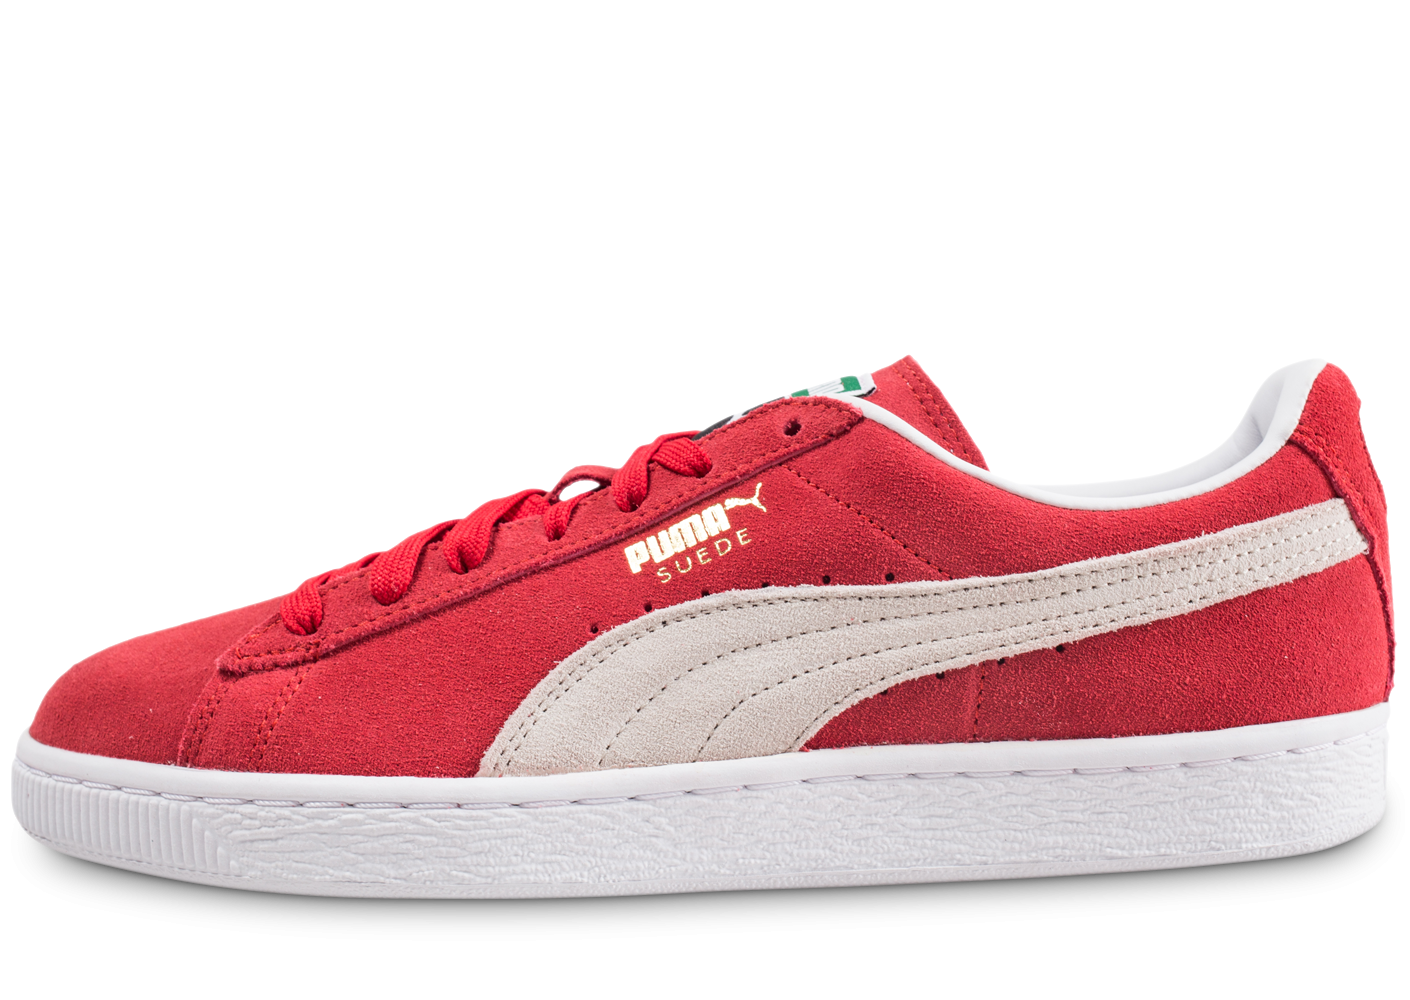 6aqryw5w Rouge Chaussures Suede Chausport Baskets Classic Homme Puma wTfpxWq